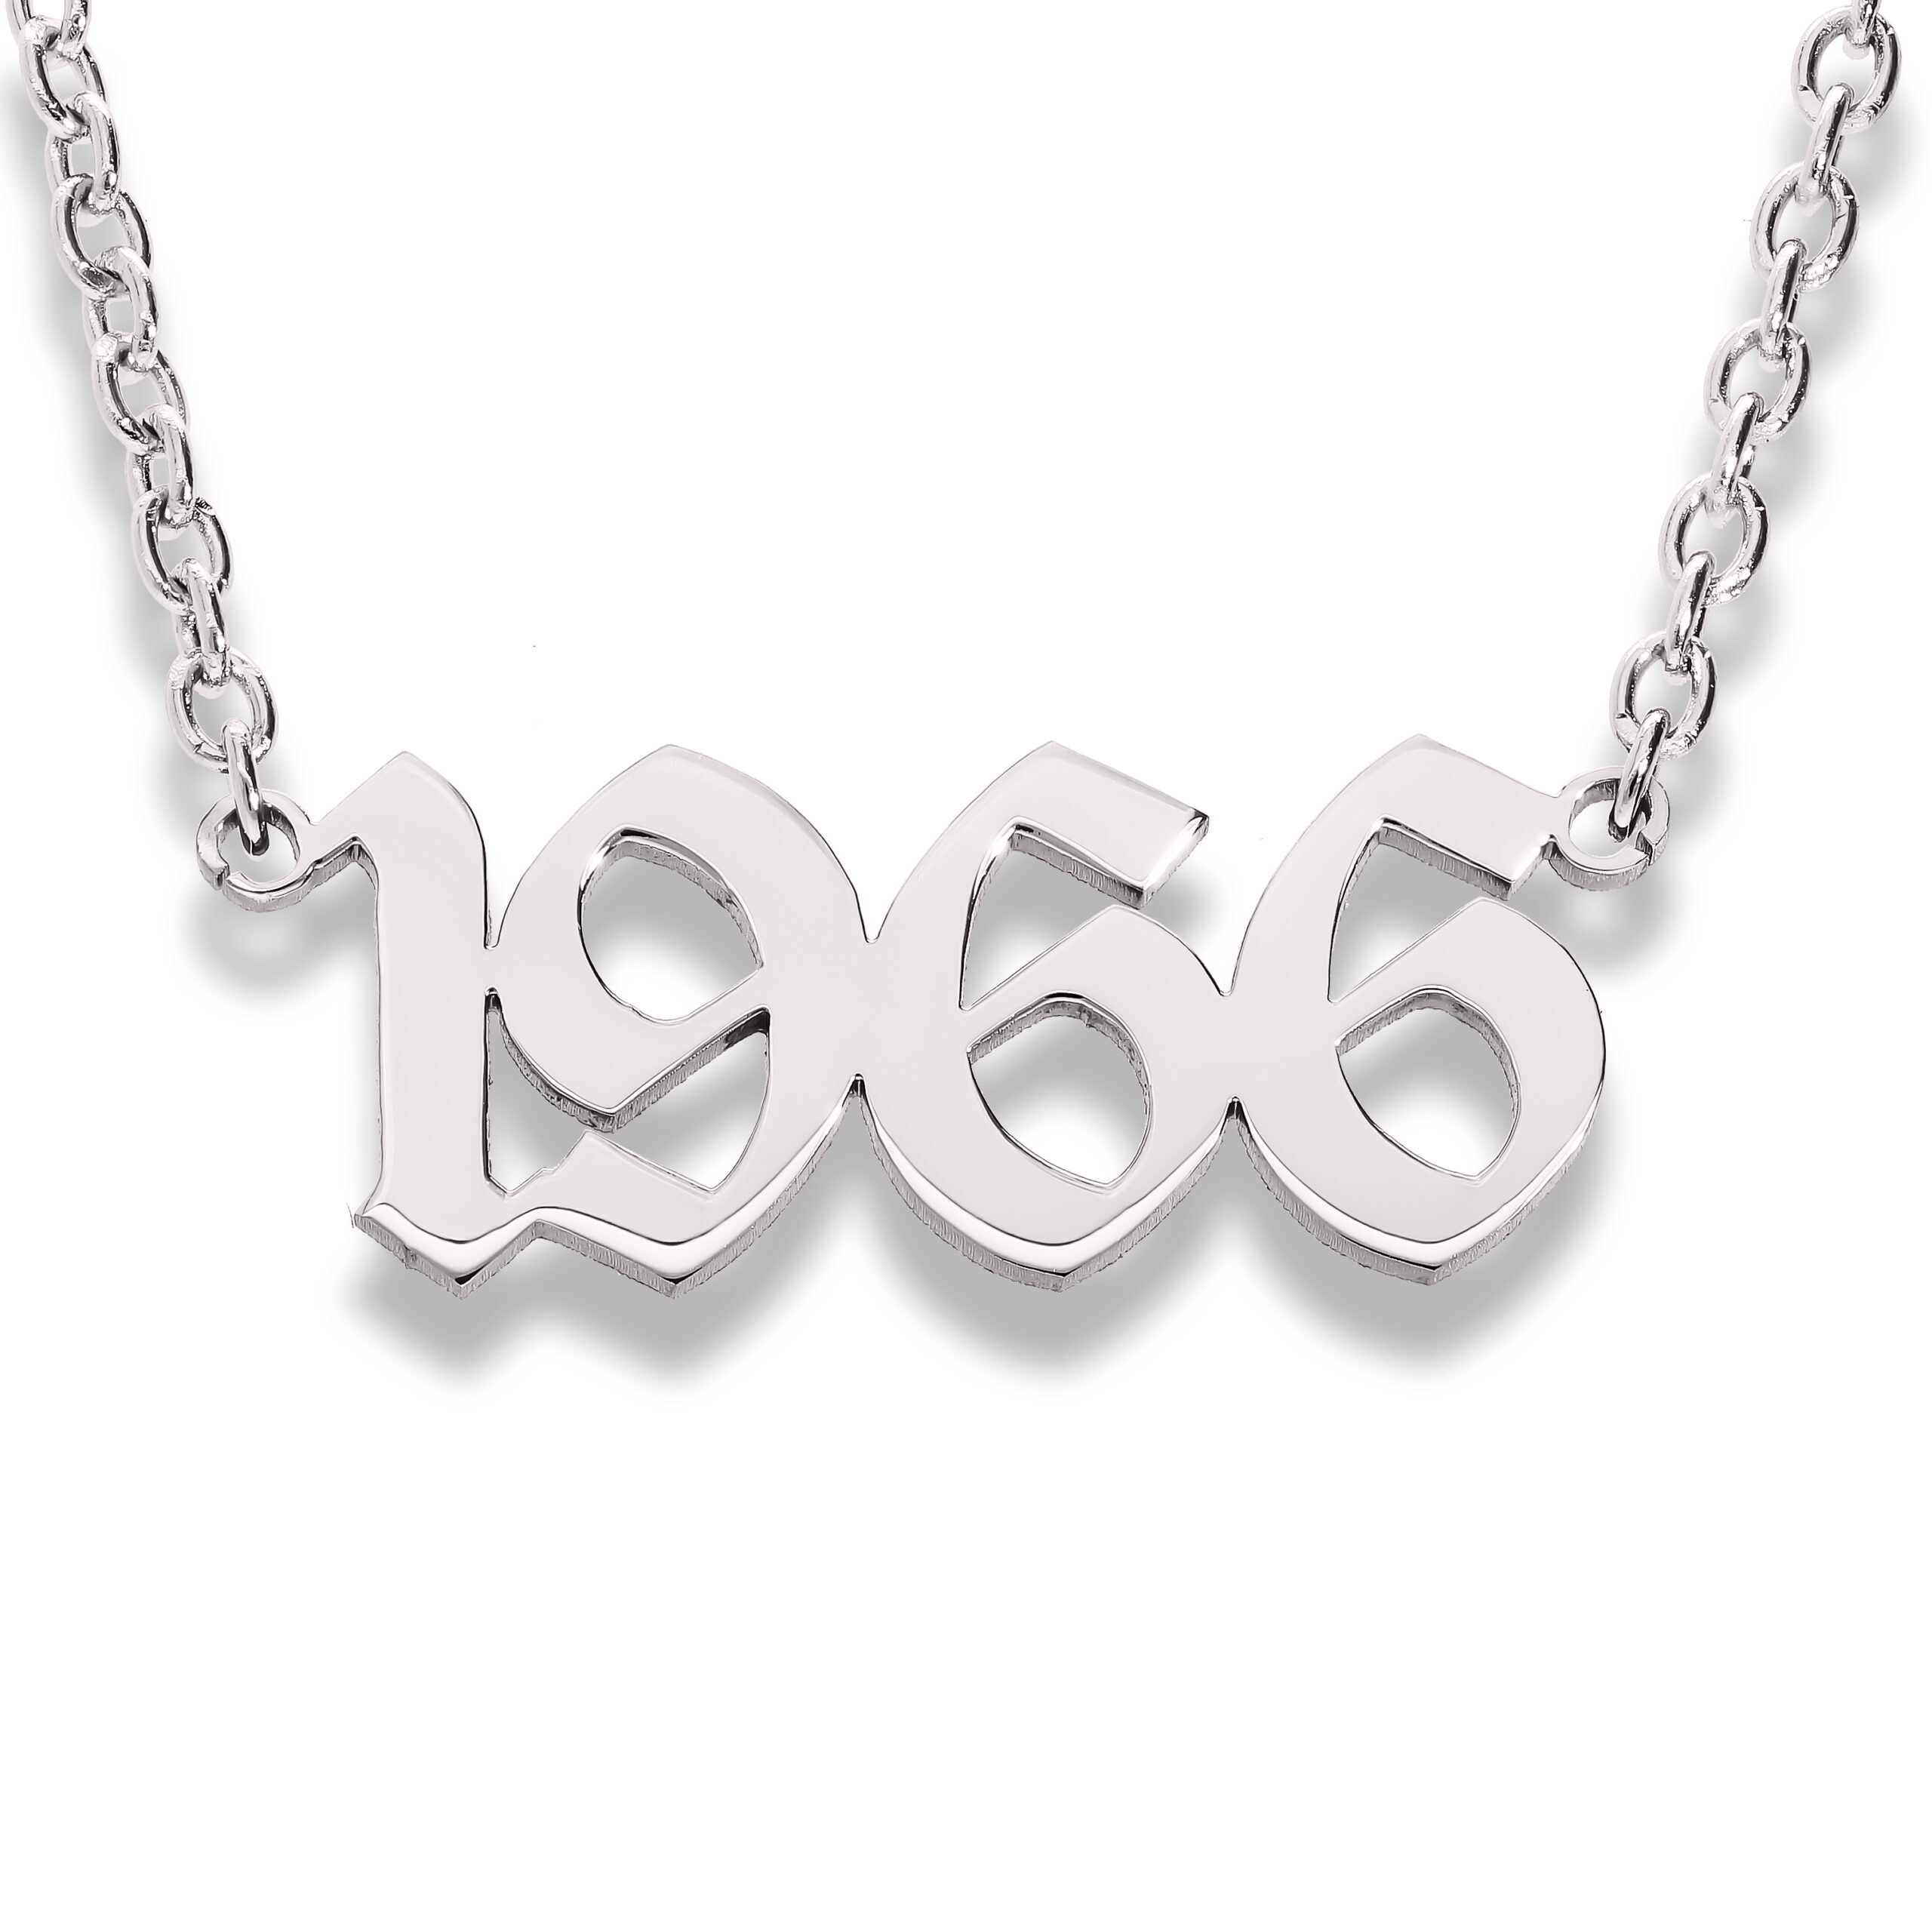 Stainless Steel Calligraphic Style with a Rounded Stainless Steel Chain (Year)